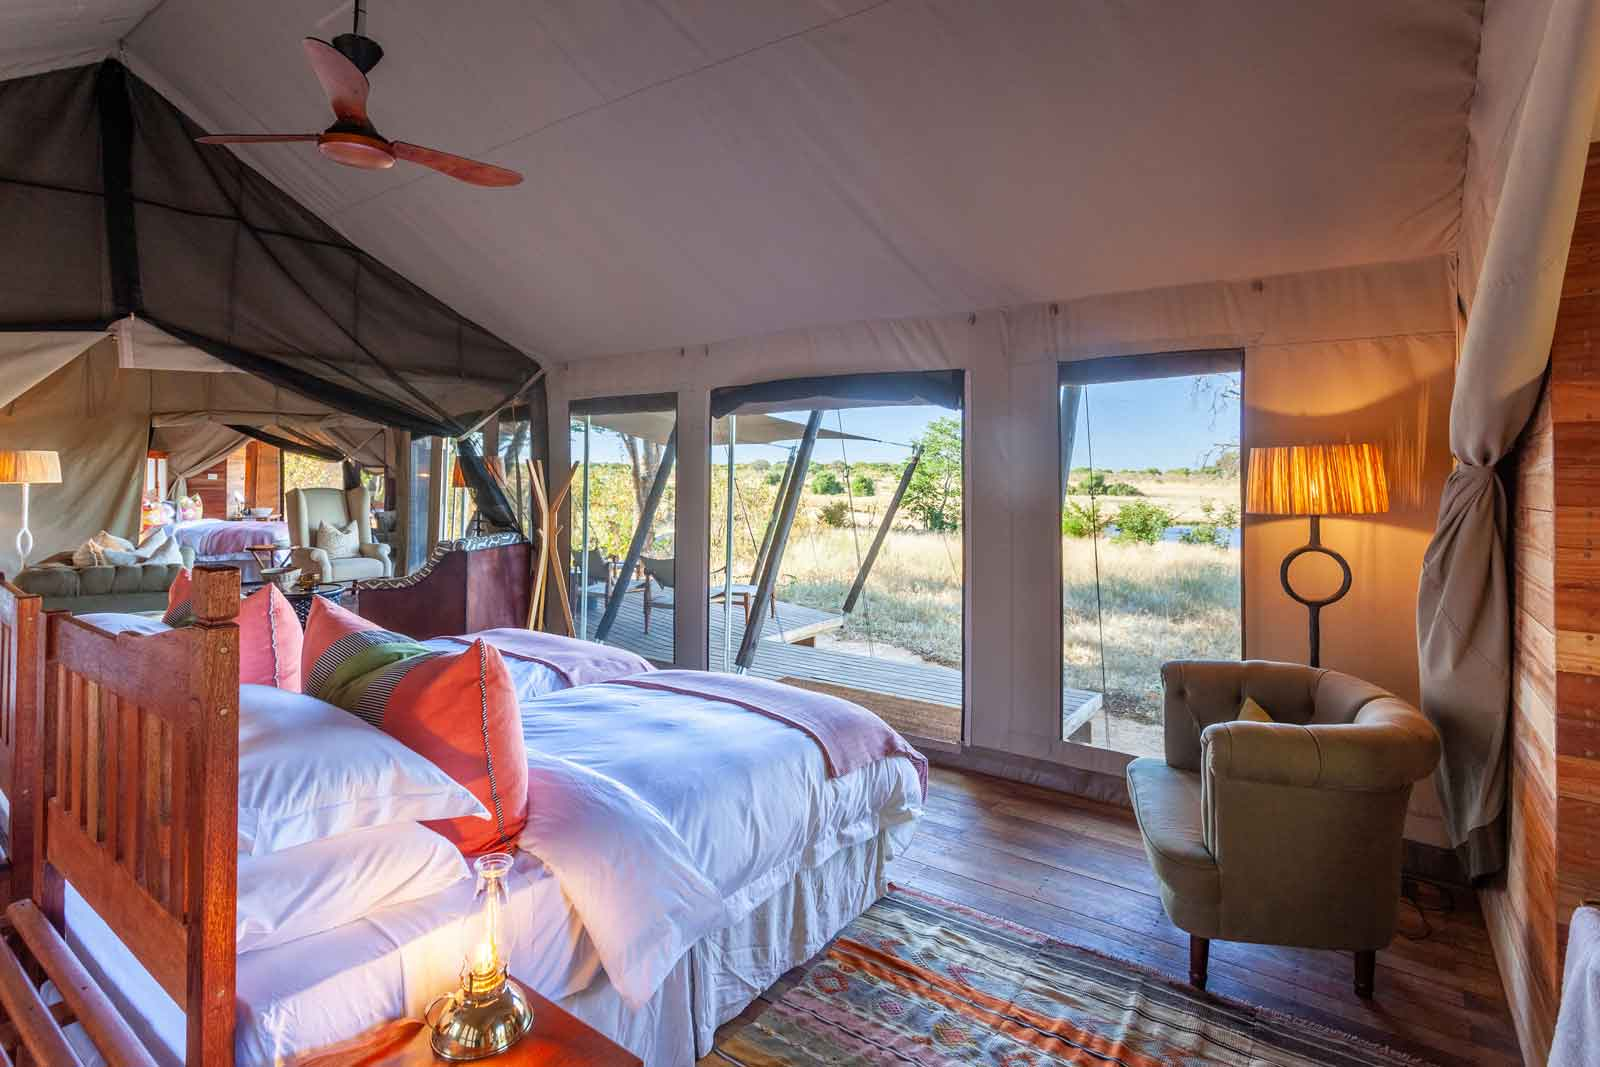 Verneys Tented Camps